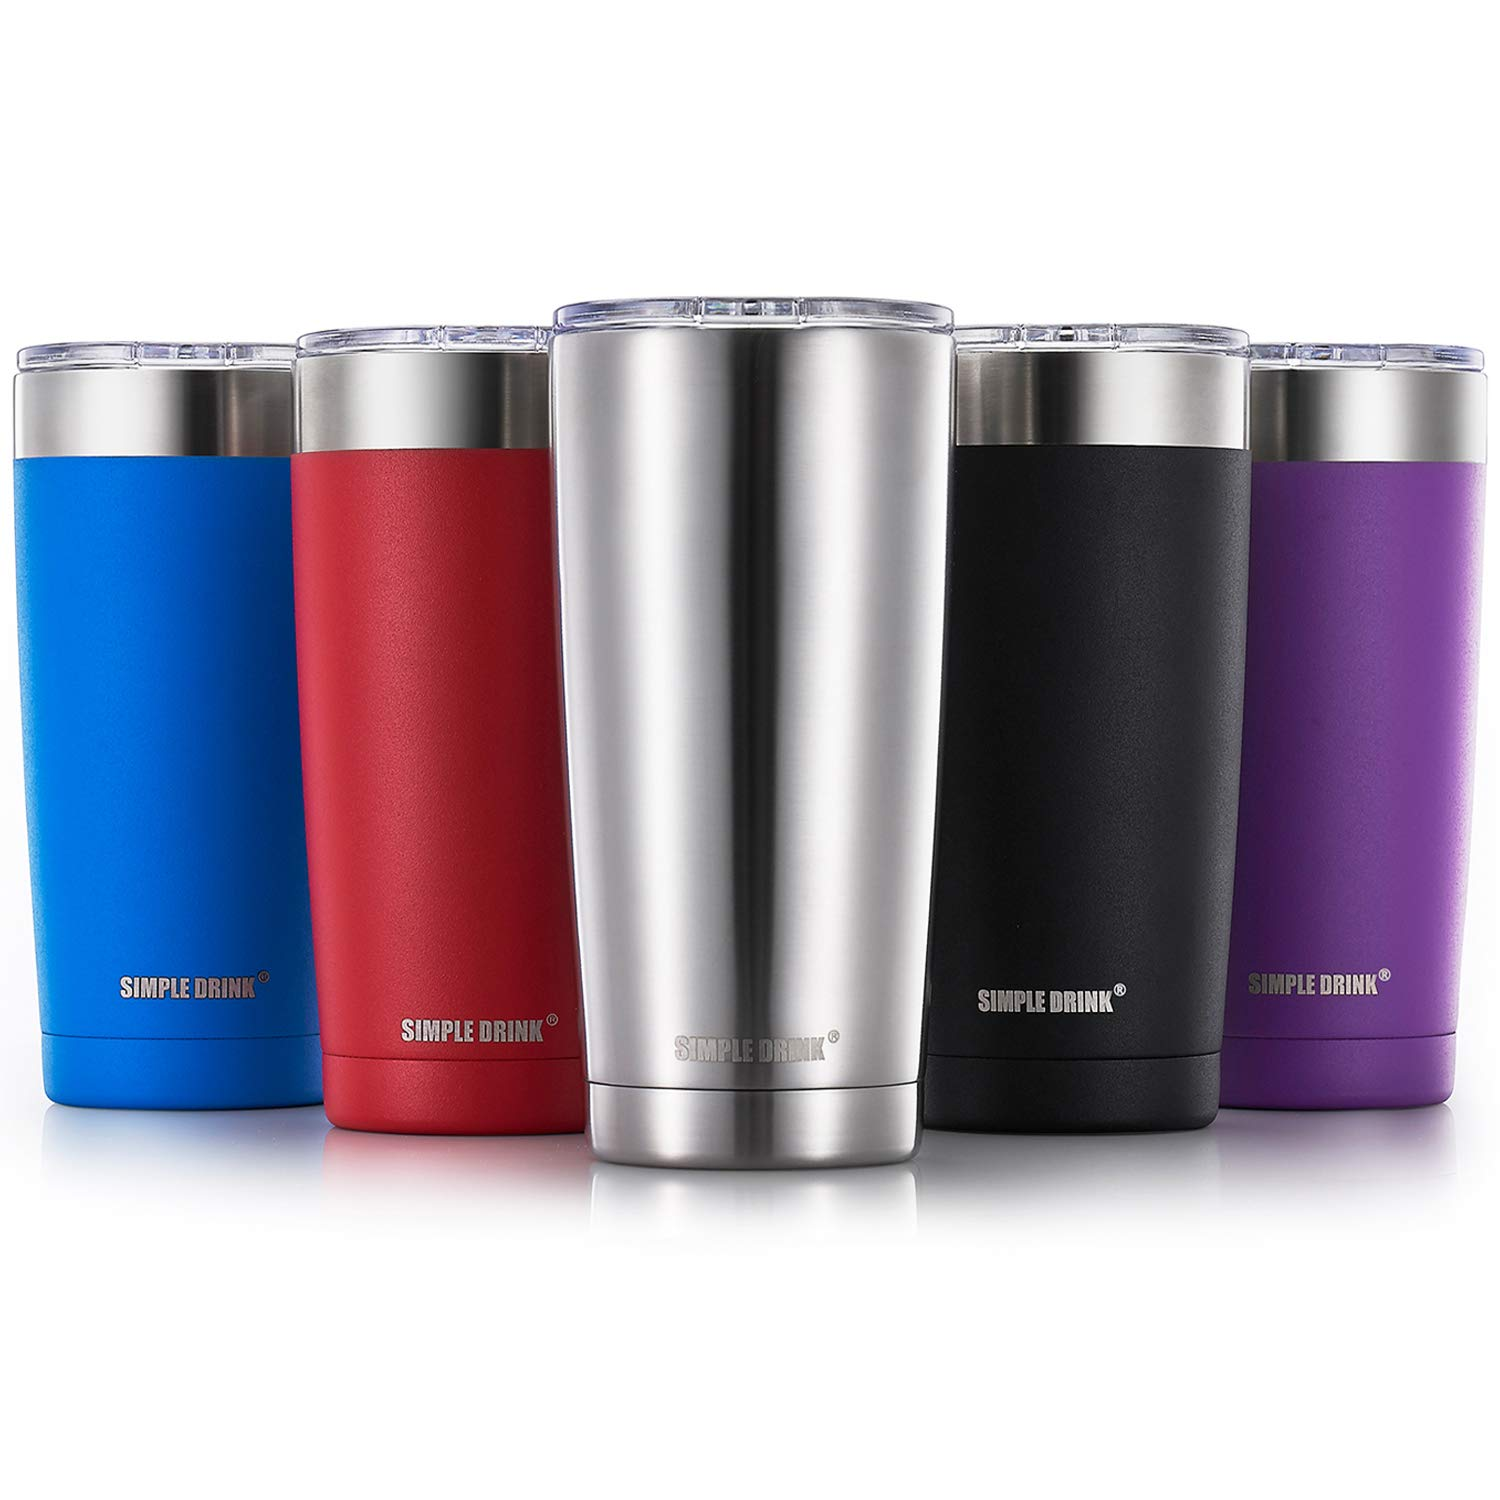 Simple Drink 20oz Stainless Steel Insulated Tumbler with Splash-Proof Lid - Double Wall Travel Coffee Mug - Works Great for Ice Drink & Hot Beverage (Caribbean Blue 20 Oz) LT